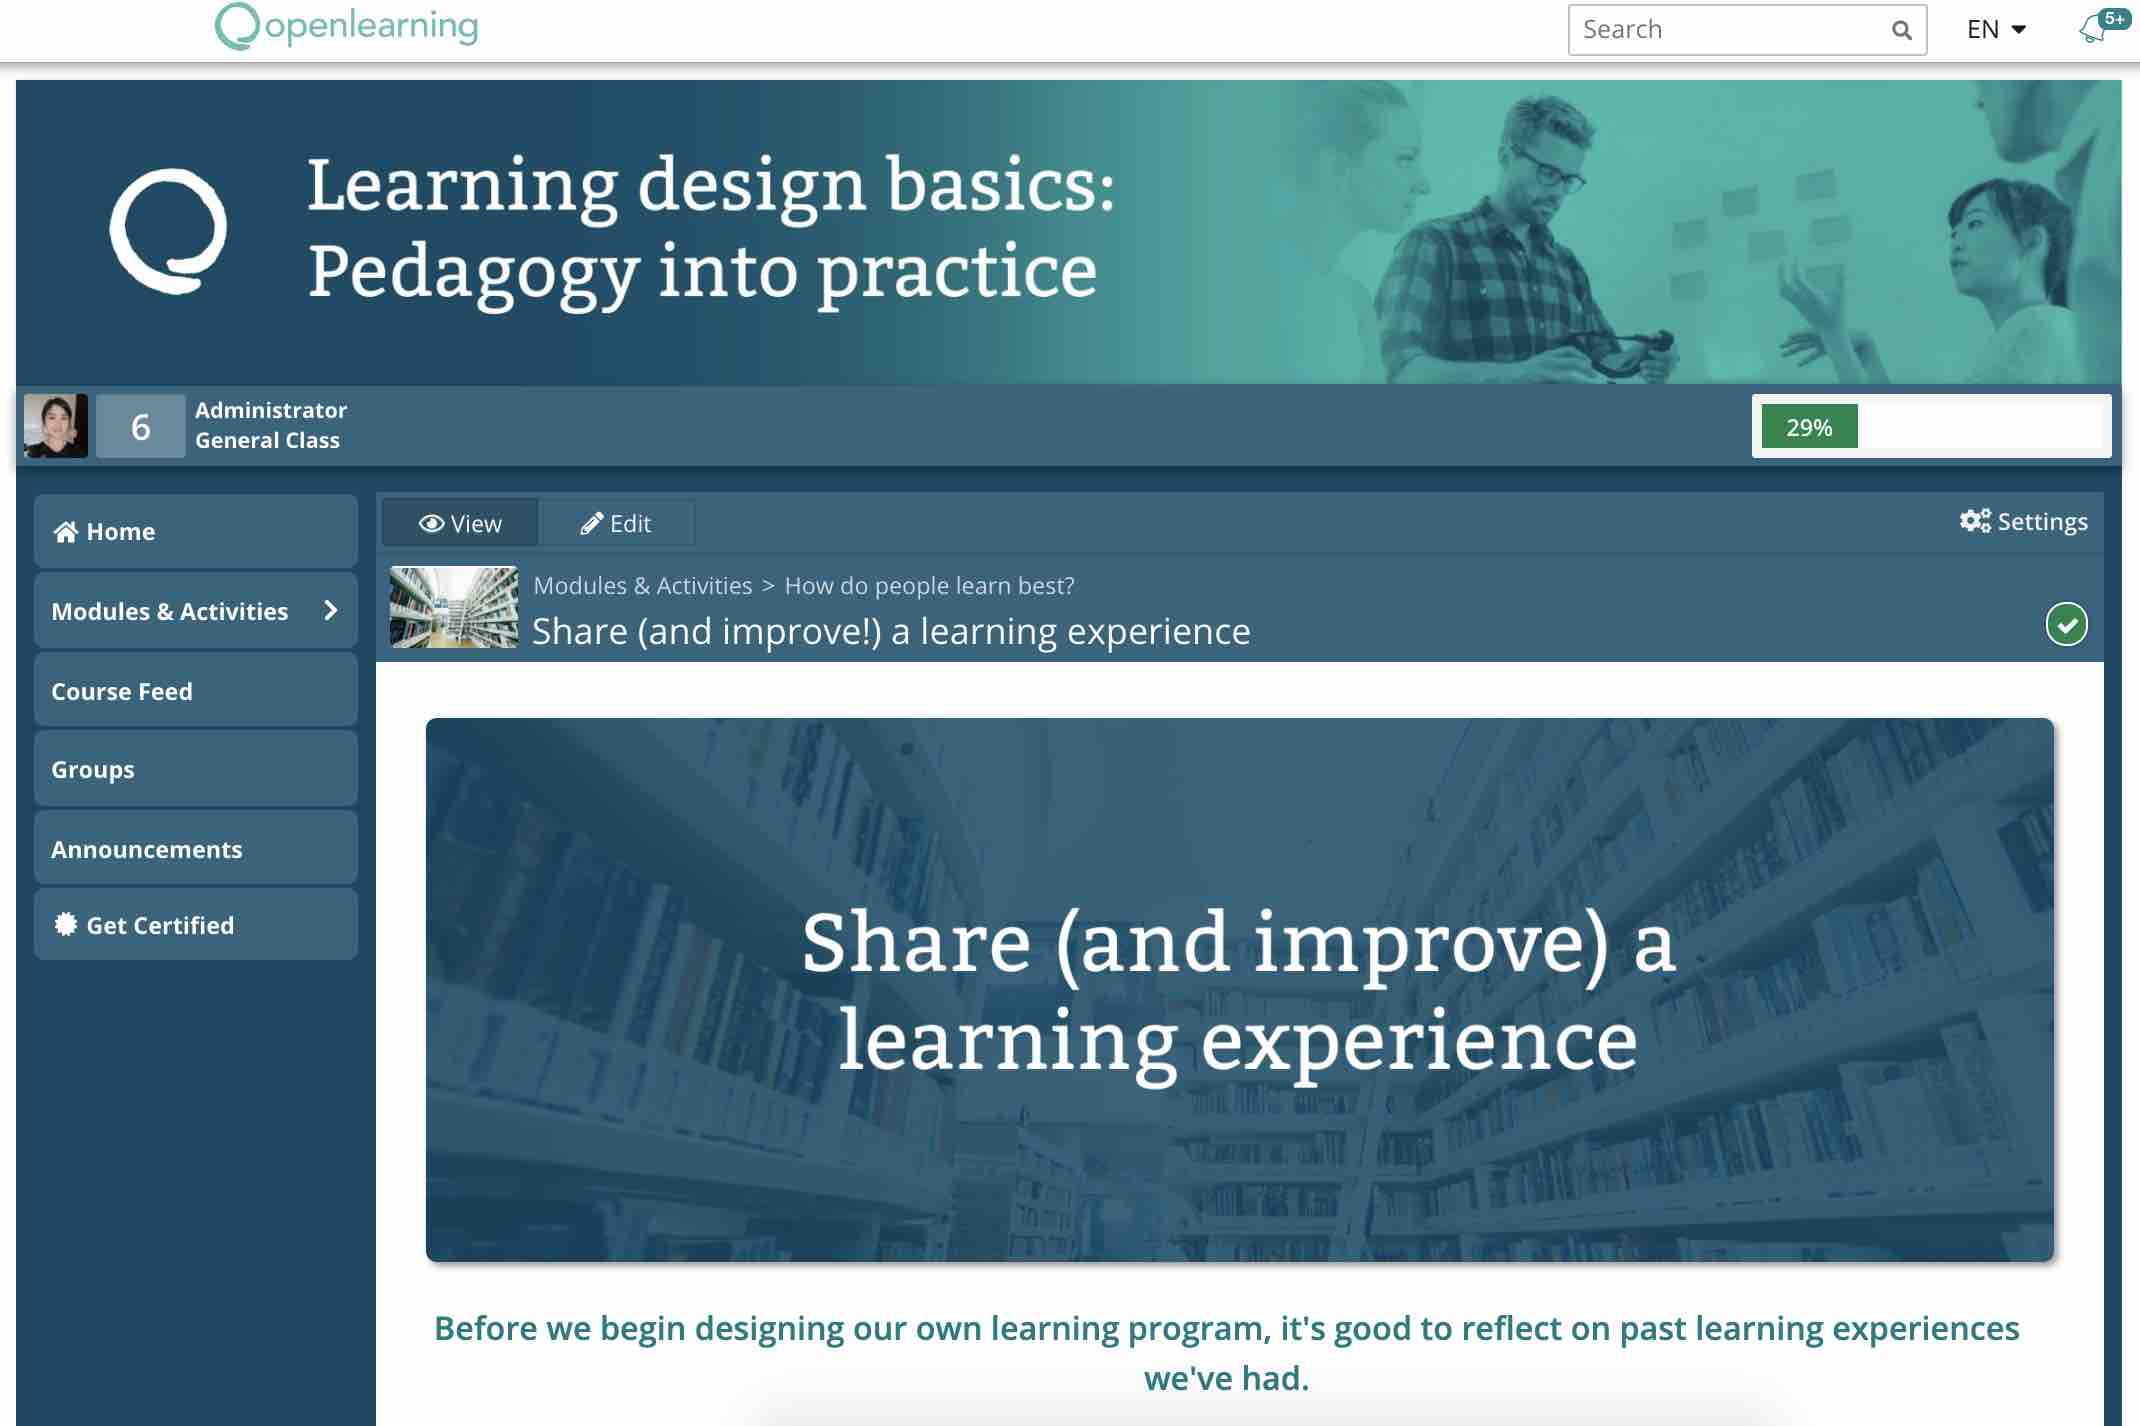 A screenshot from inside the Learning Design Basics course on OpenLearning